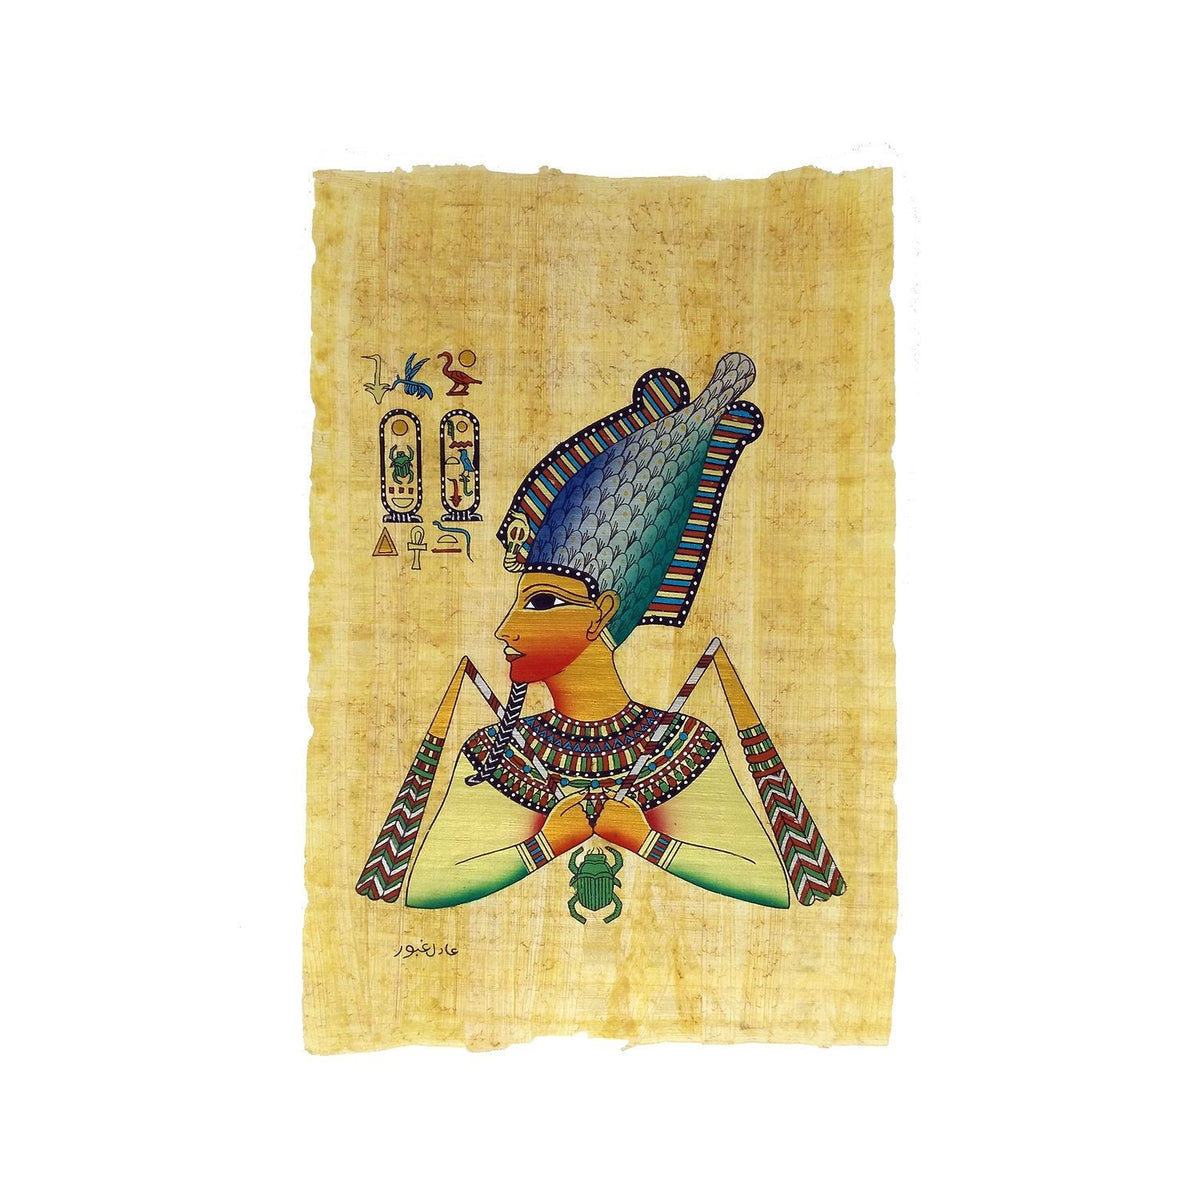 Hand-painted Osiris Papyrus - Ancient Egyptian God Osiris with Flail & Scarab Beetle - 20x30cm